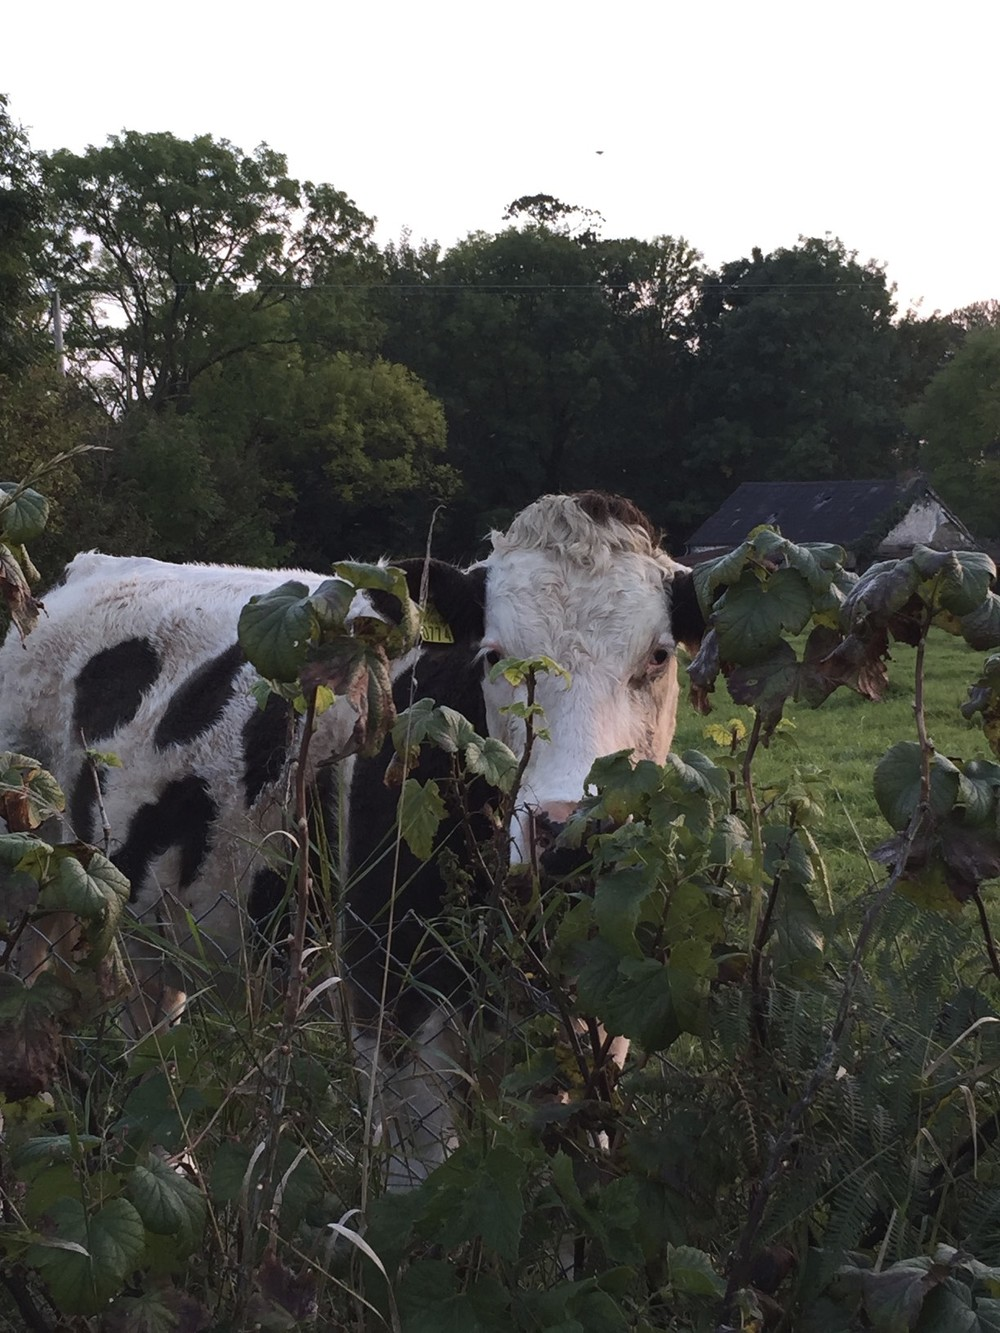 One of the locals at Park South Bed and Breakfast Inn, Mallow, Cork